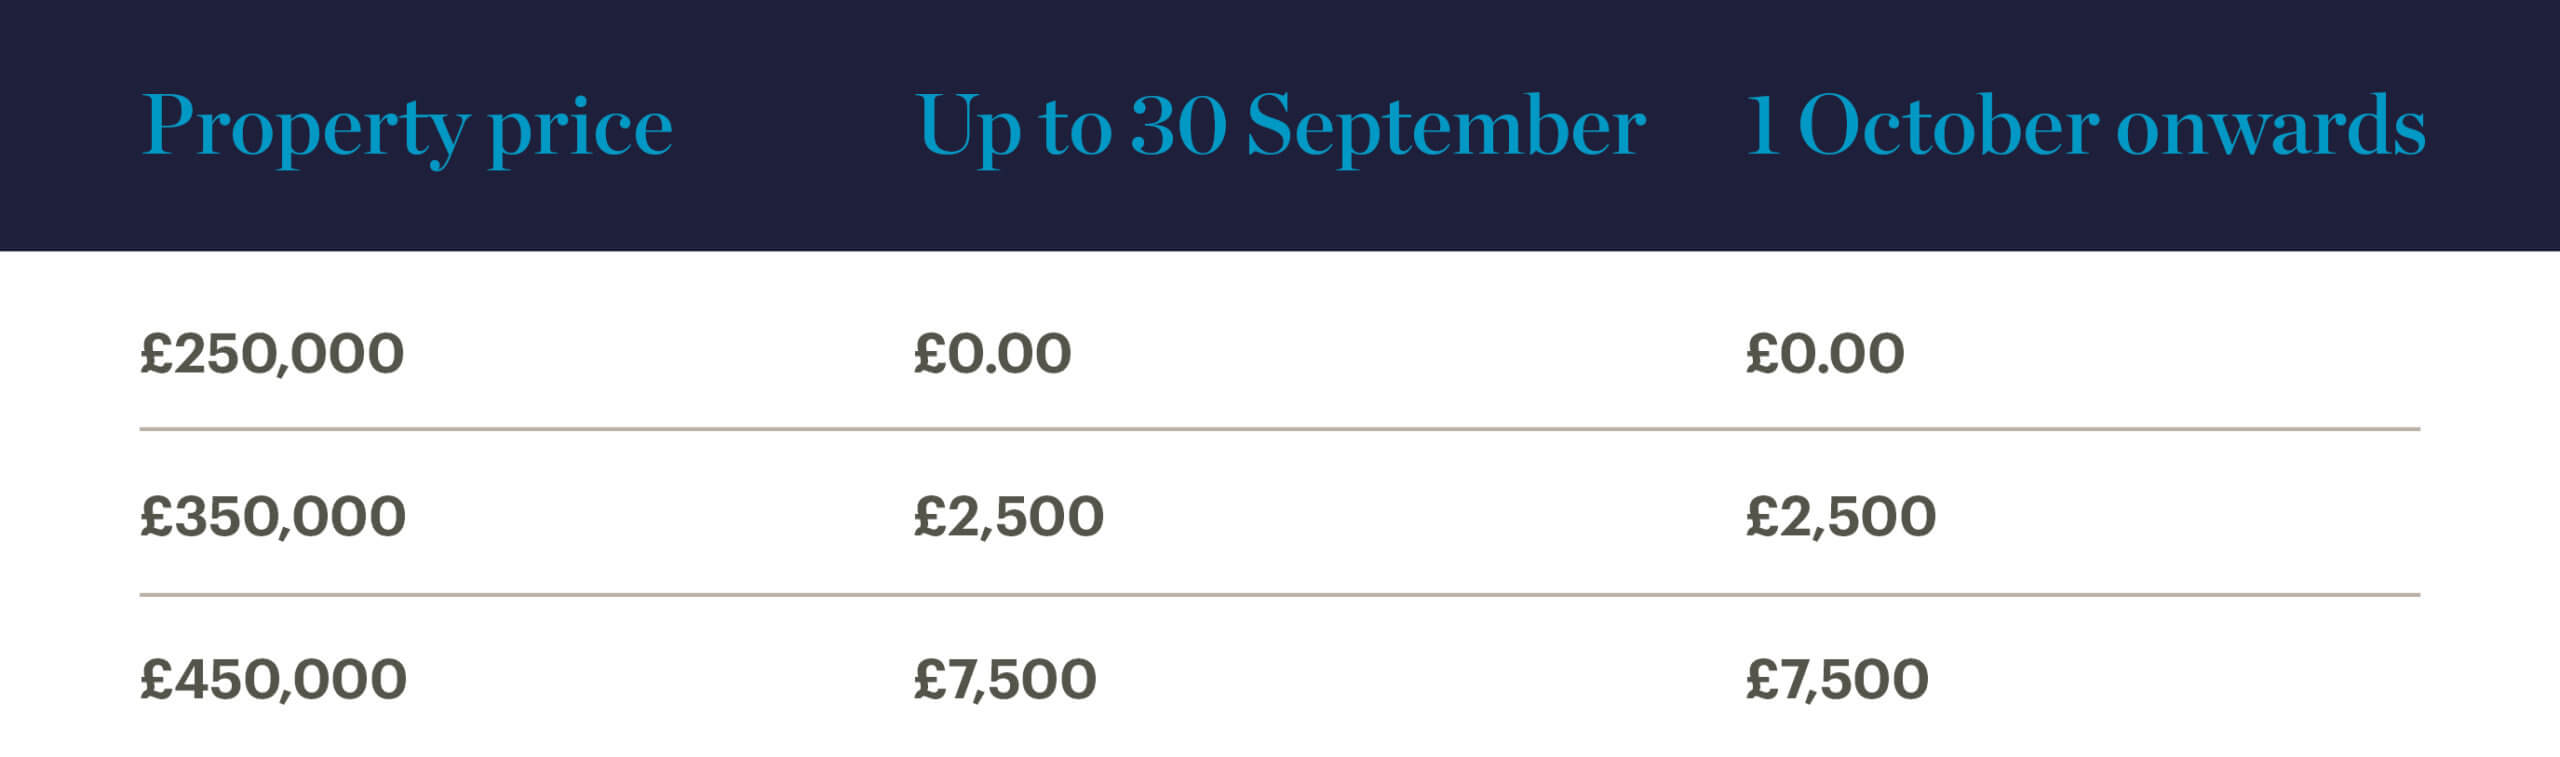 Home purchase savings before 30 September - first-time buyers